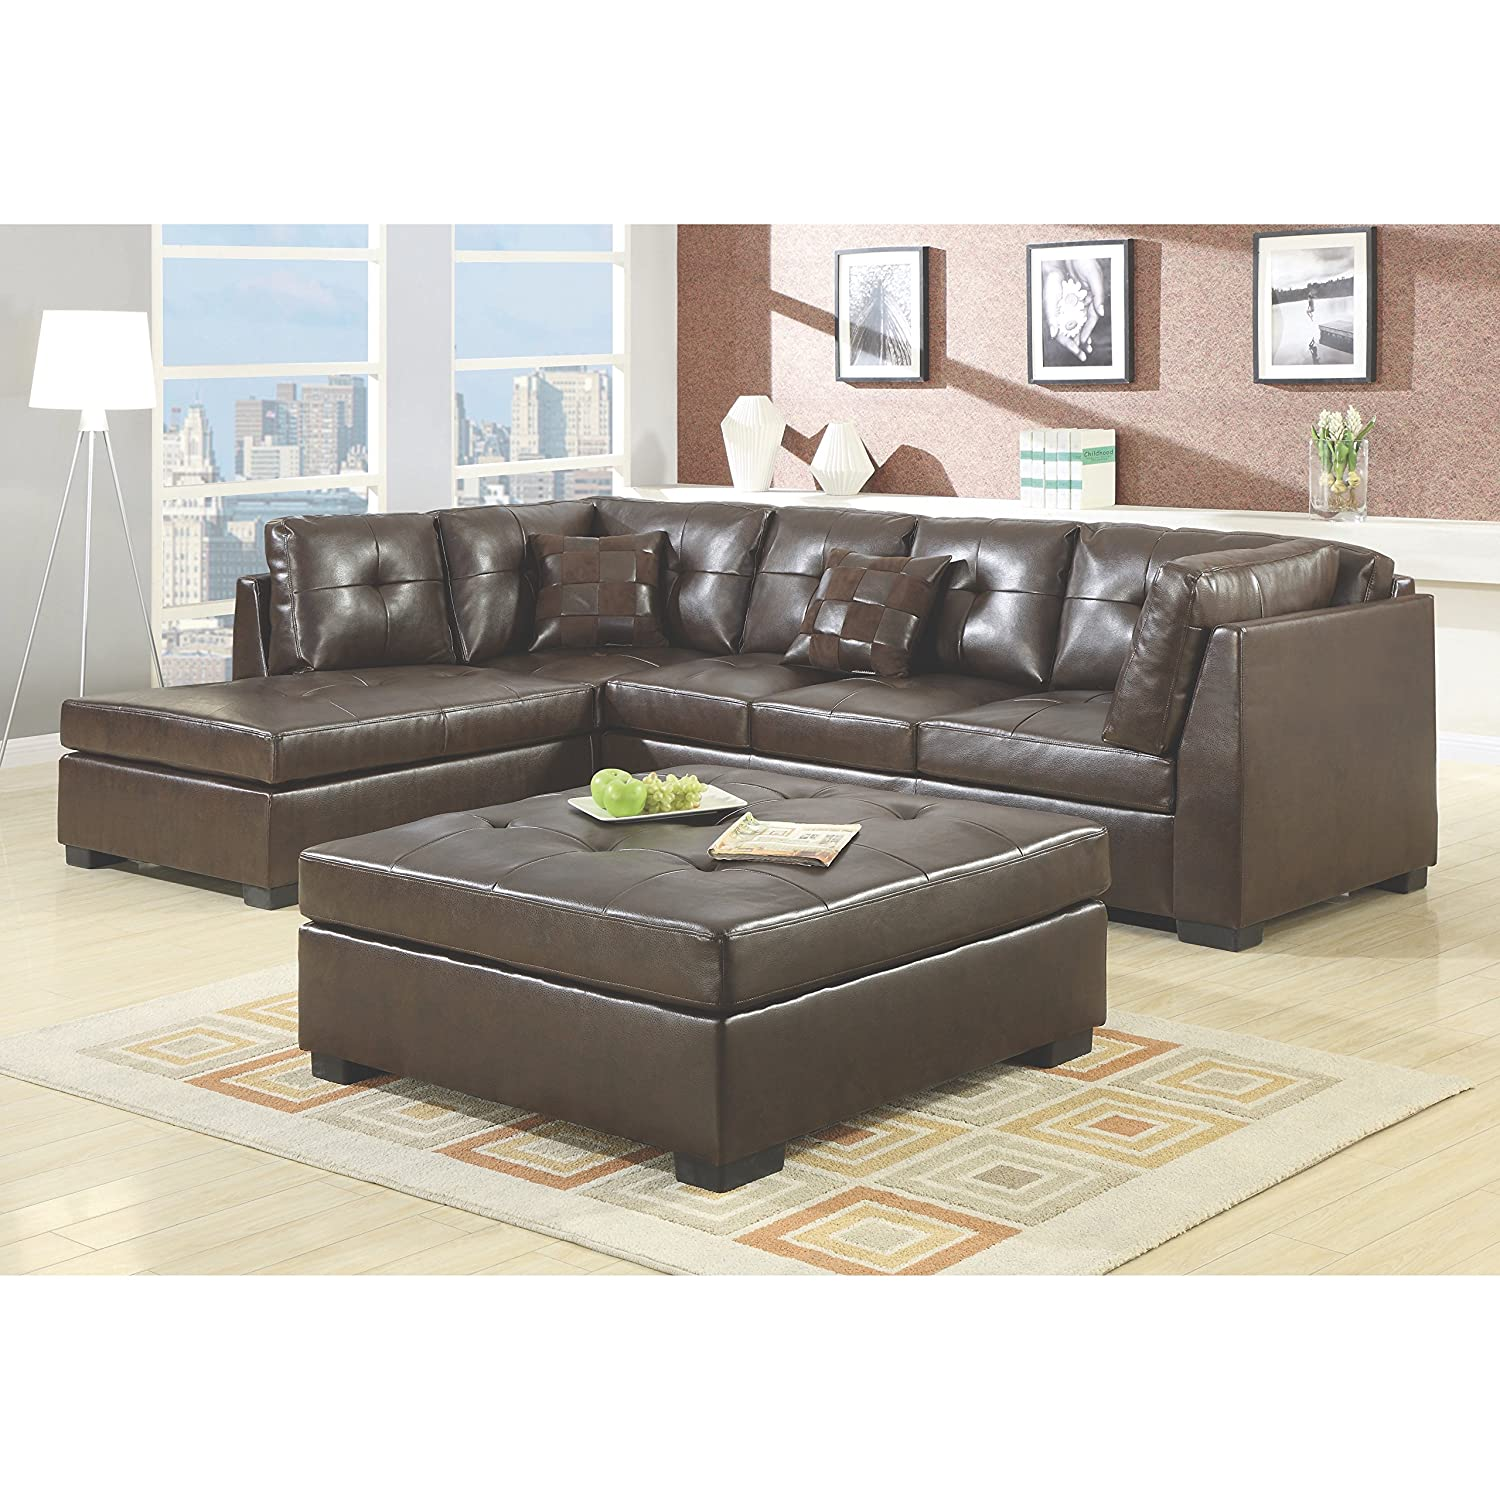 Amazon.com: Coaster Home Furnishings 500686 Casual Sectional Sofa, Brown:  Kitchen U0026 Dining